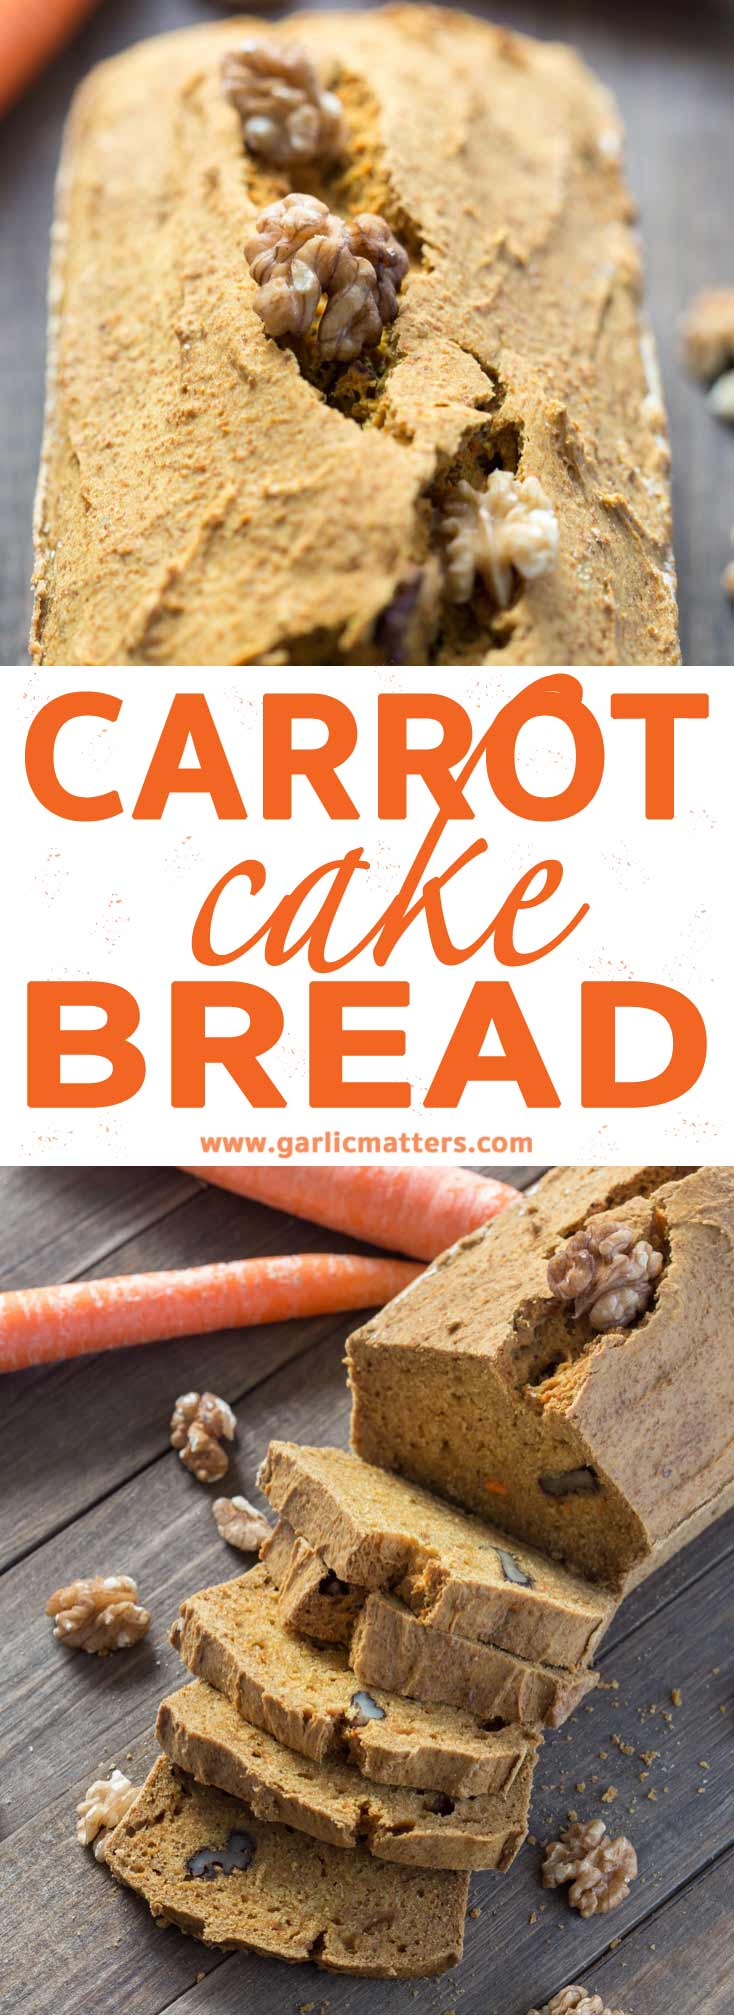 Easy Carrot Cake Bread recipe (GF) - new way to enjoy the delicious cake, but with less sugar and hassle. Great with morning tea or coffee!